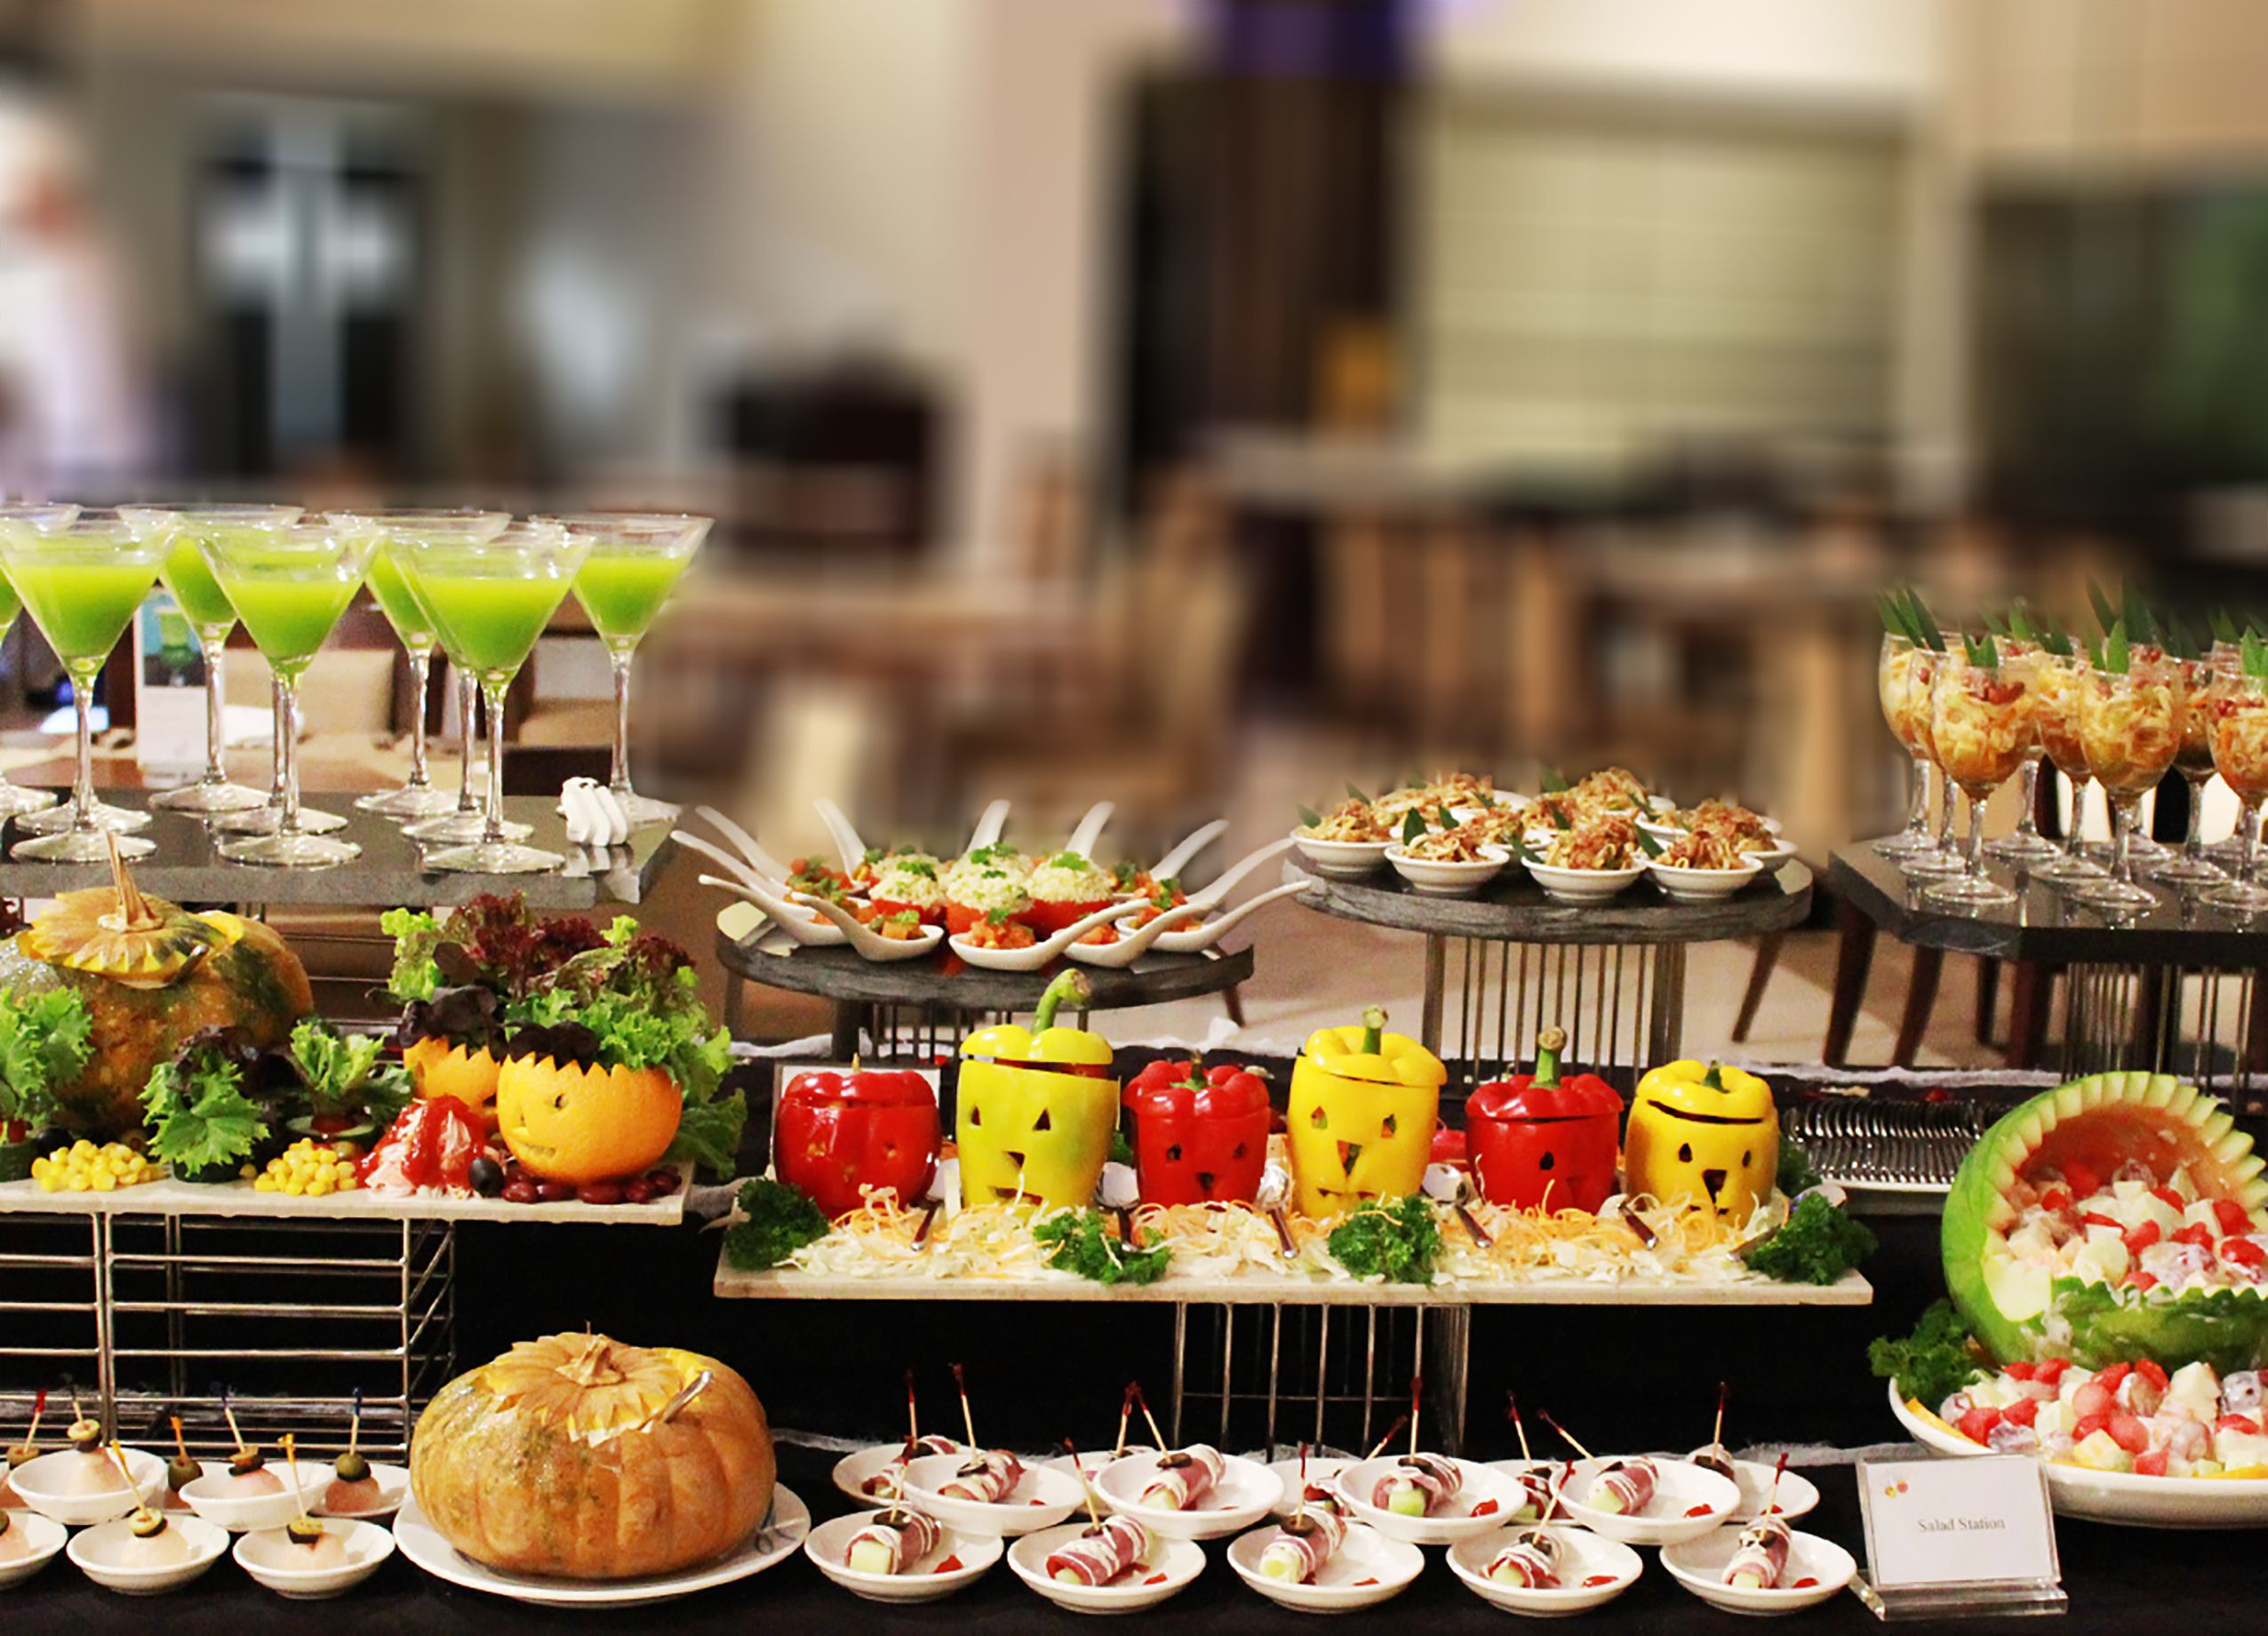 Halloween Party Buffet Dinner Try The Best Kacang Ayu 1kg By Bali And Join At Kembang Goyang Restaurant For Idr 20800 Net Per Pax